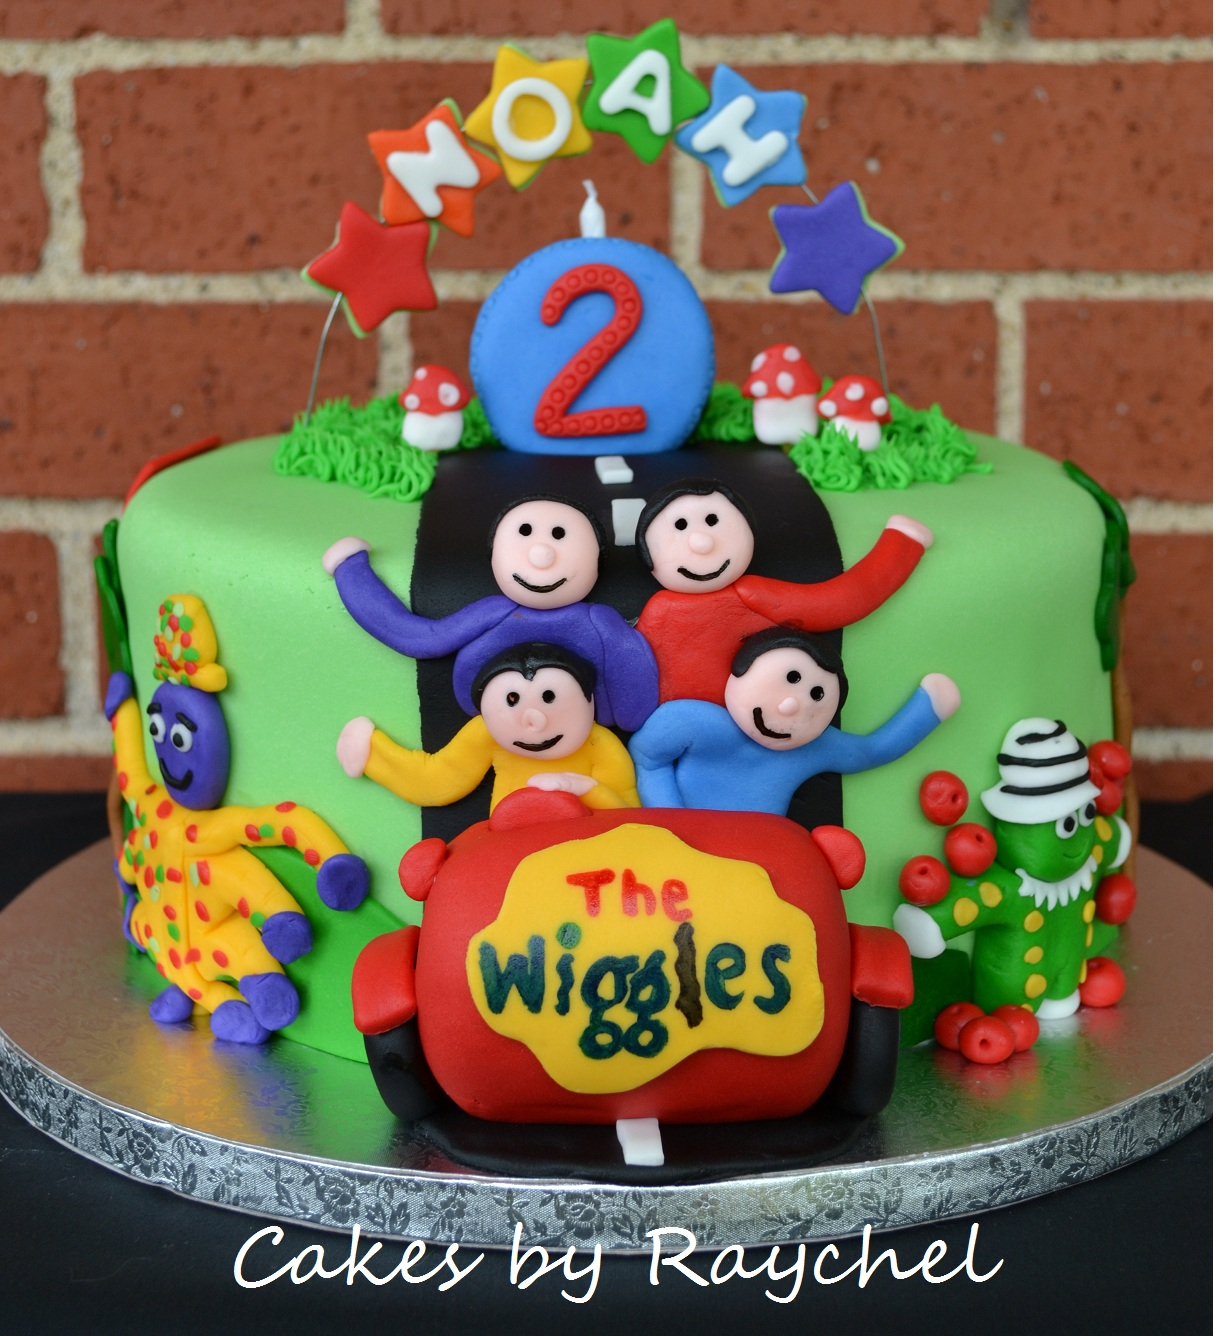 My Creative Way The Wiggles Cake Make Your Own Birthday Candle